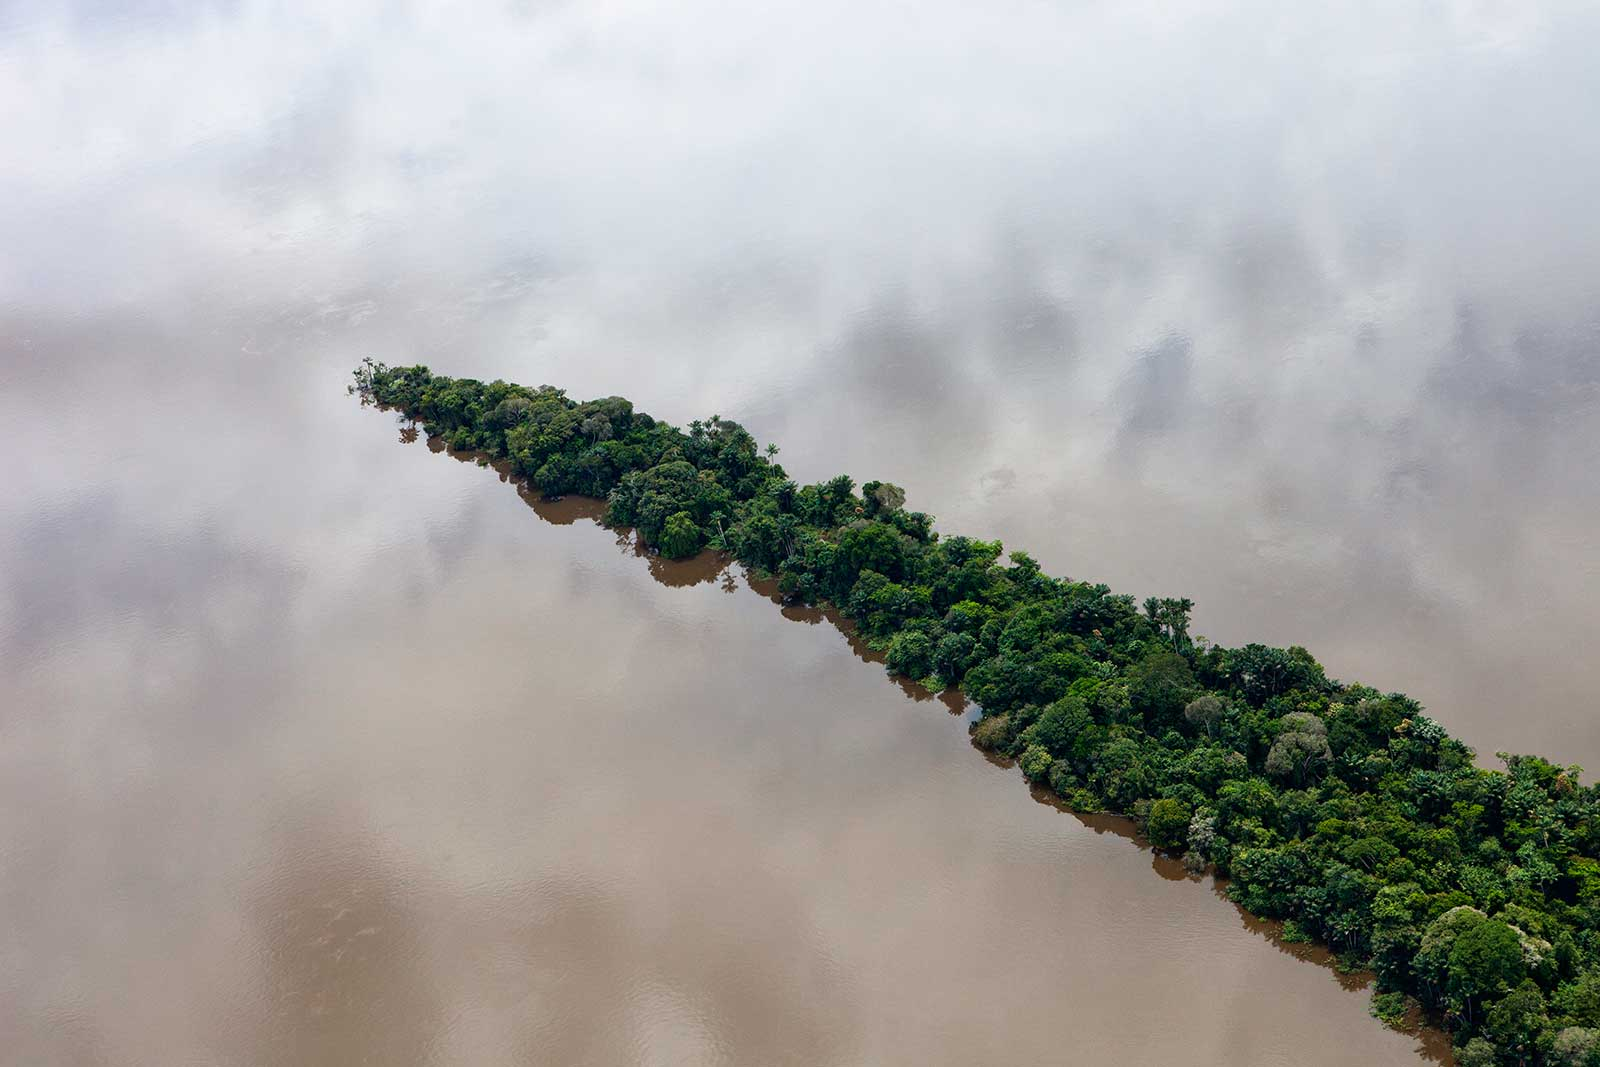 rainforest trees projecting into body of water